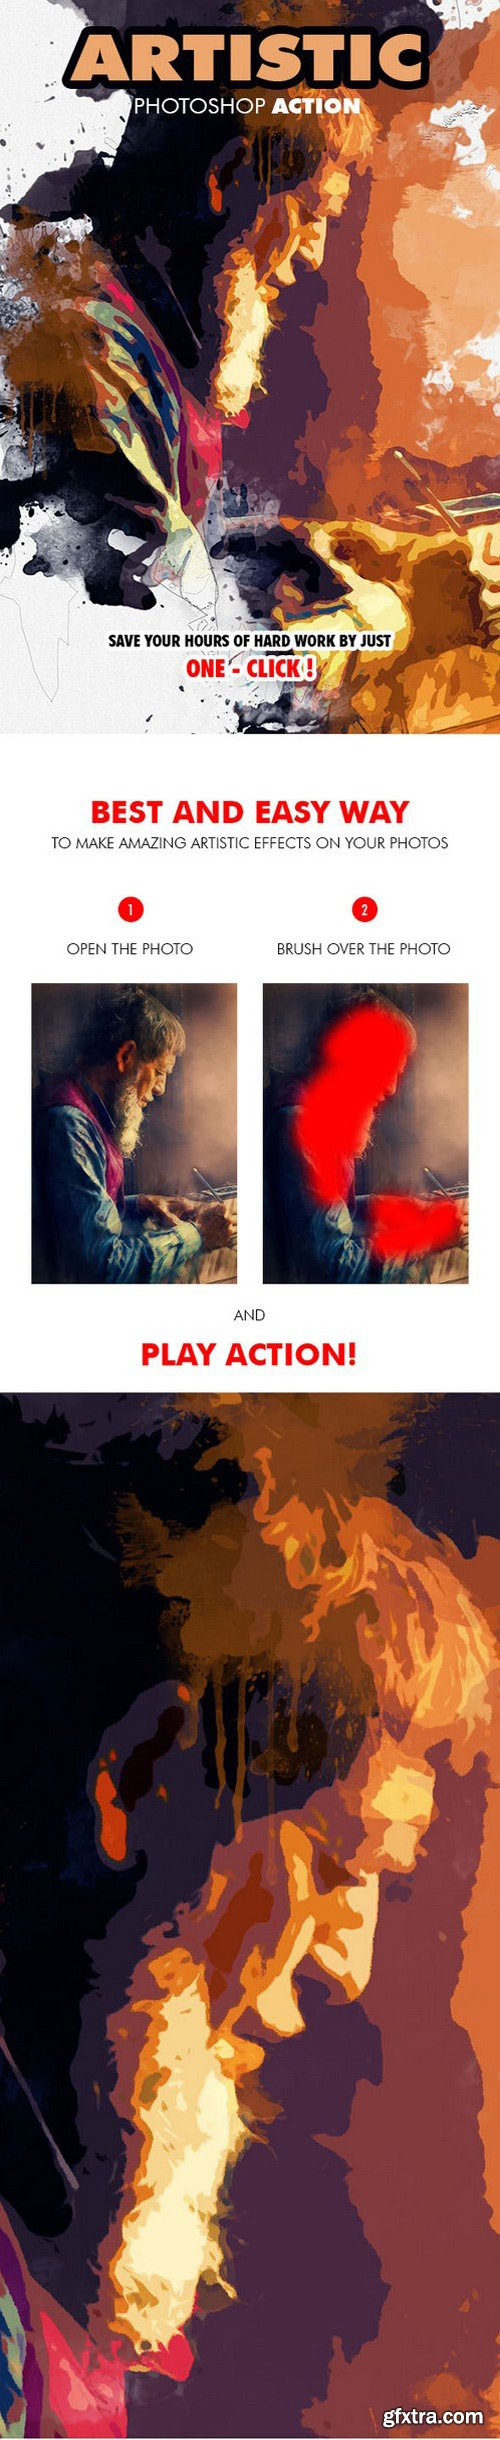 Graphicriver - Artistic Photoshop Action 19663049